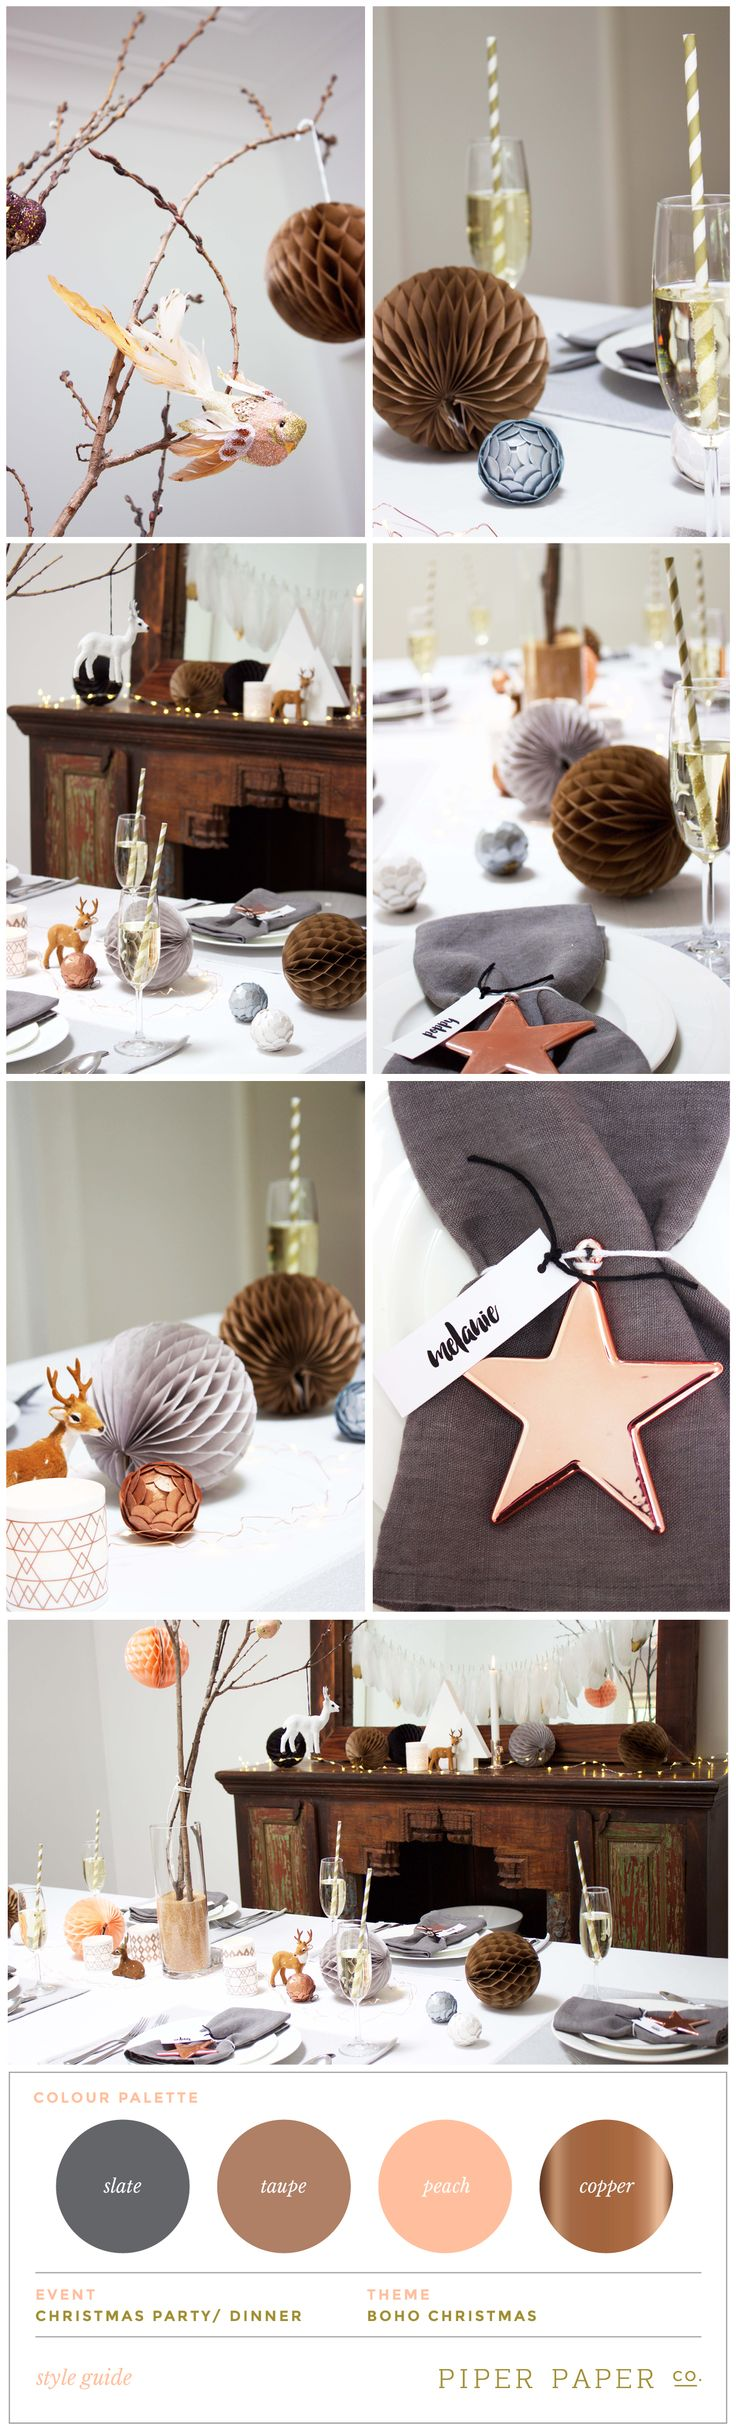 Style and Mood Board for Boho Christmas Tablescape. Sophisticated and stylish colour palette of slate, taupe, peach and copper. Fab table setting ideas for Christmas.